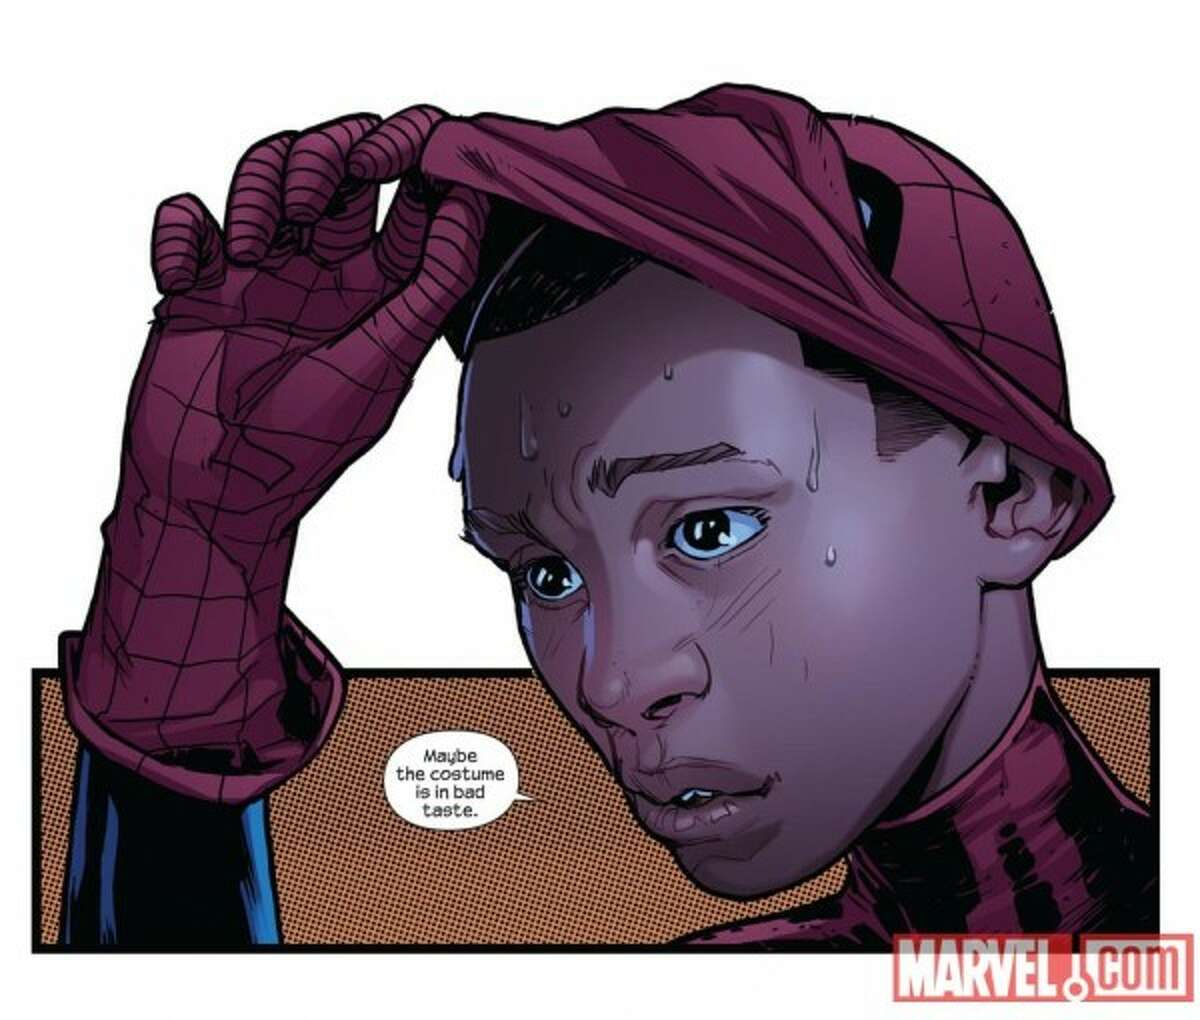 Miles Morales, the new Ultimate Spider-Man.